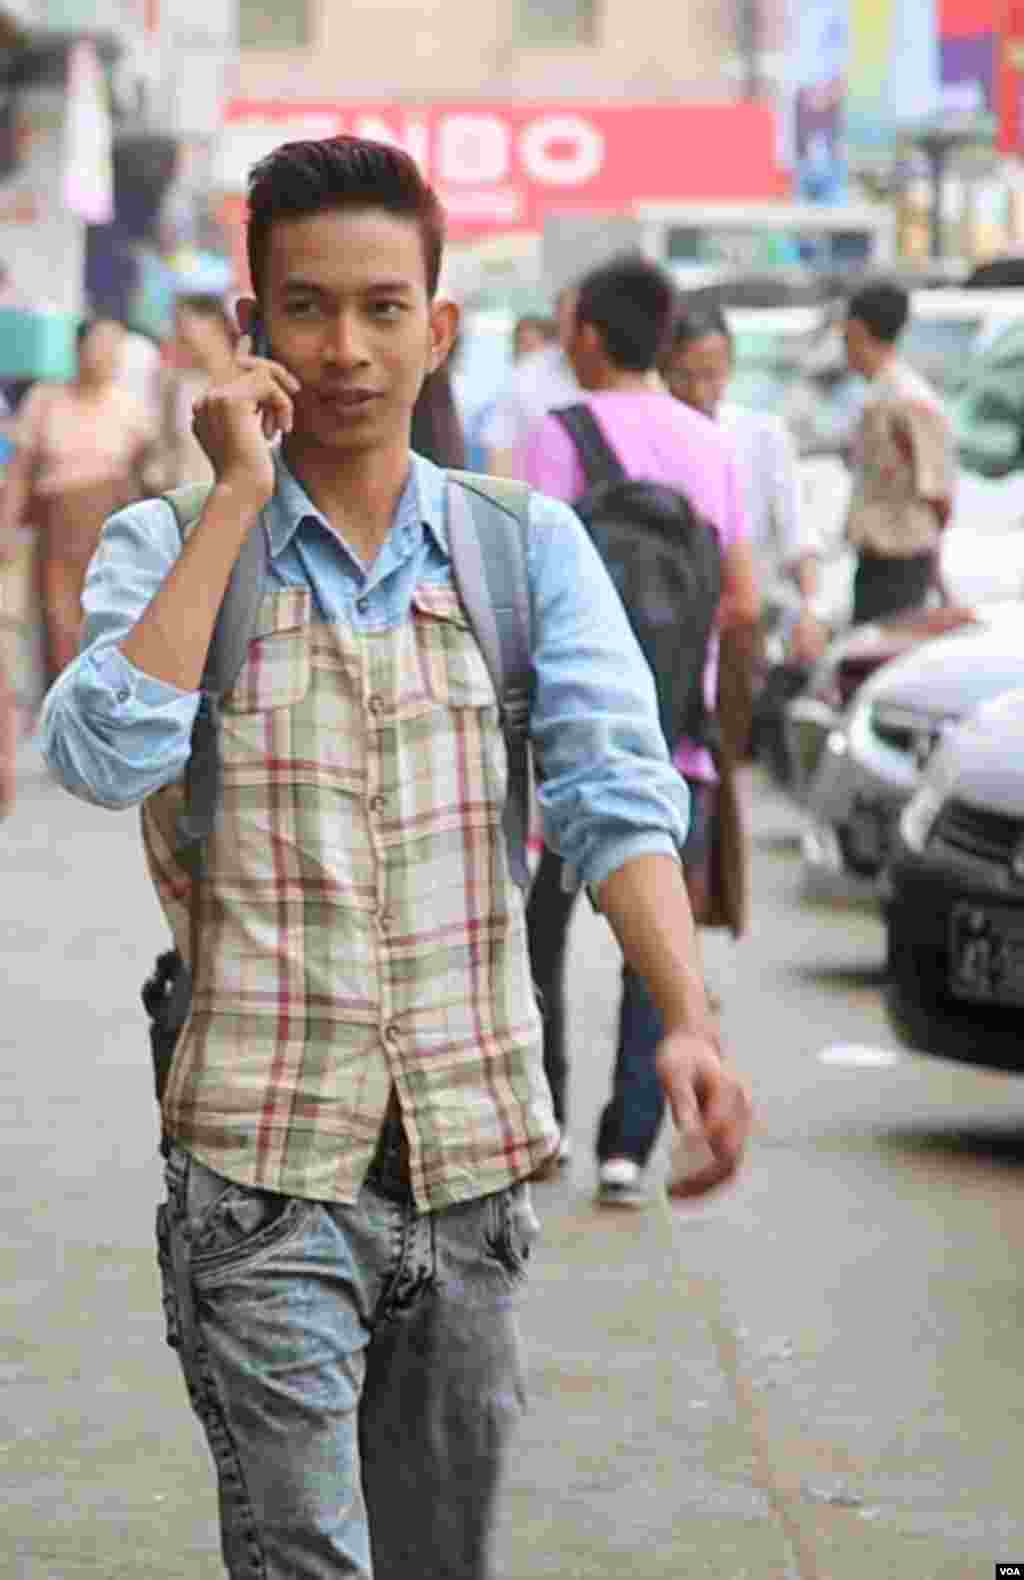 A young Myanmar man wearing jeans. (Zinlat Aung/VOA News)